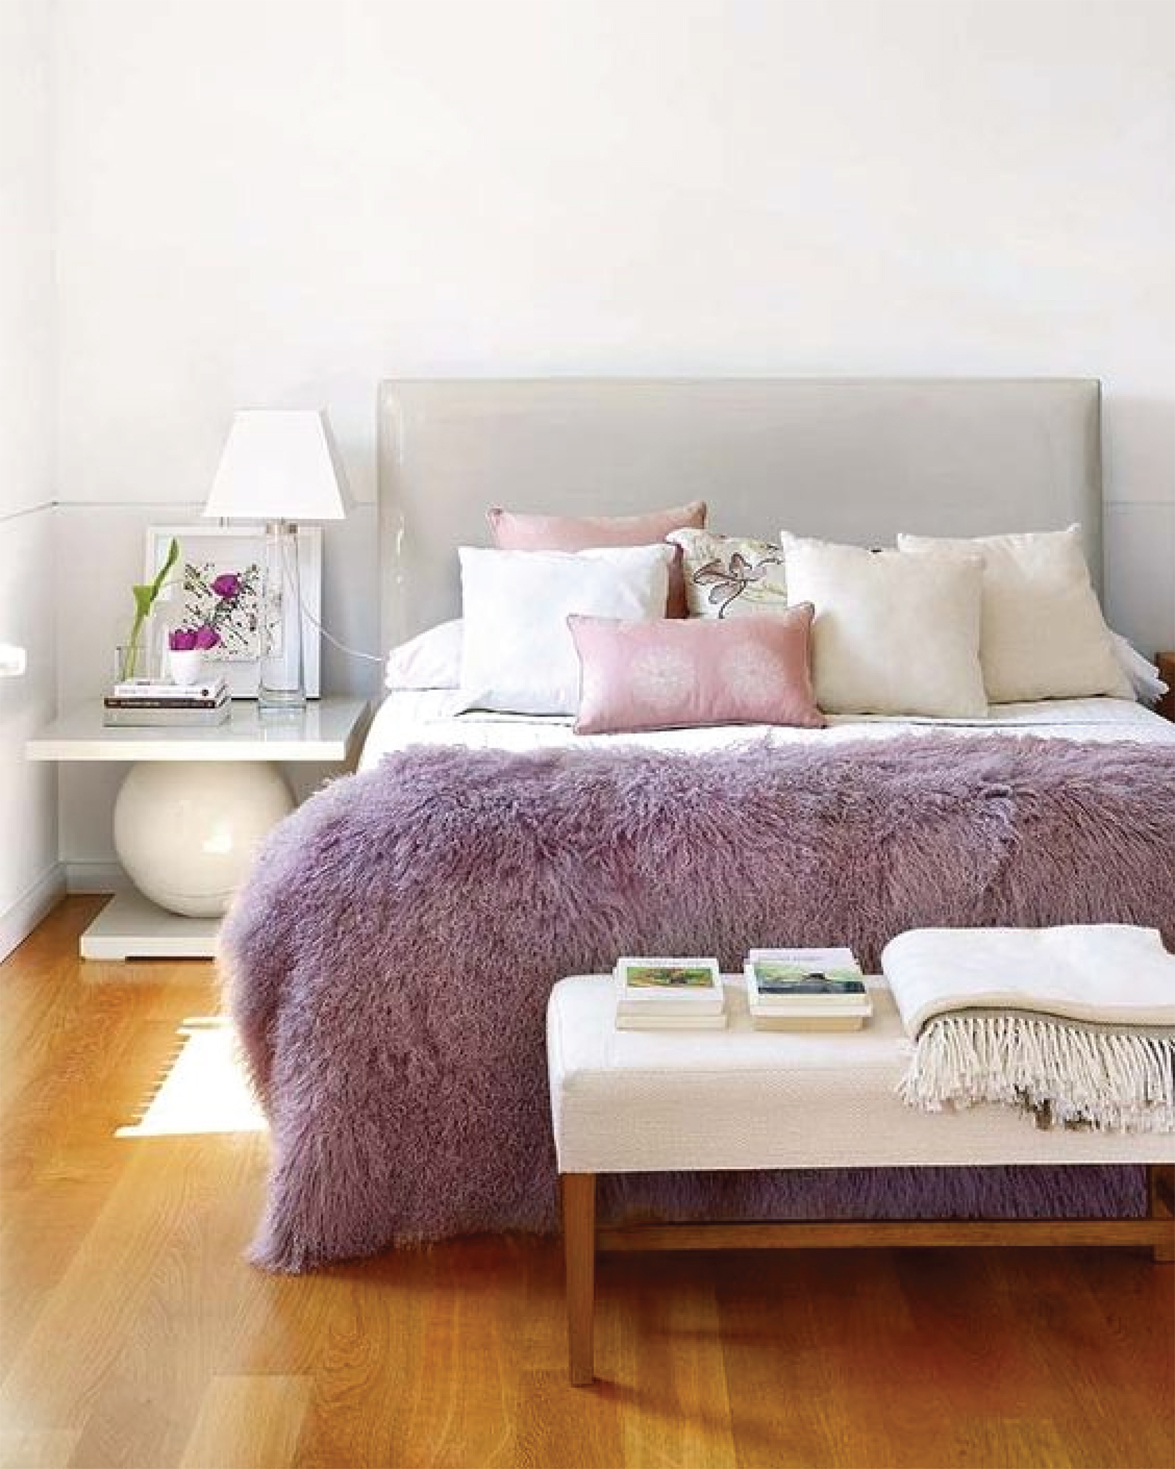 Lilac Bedroom Interior Inspiration | Akin Design Studio Blog